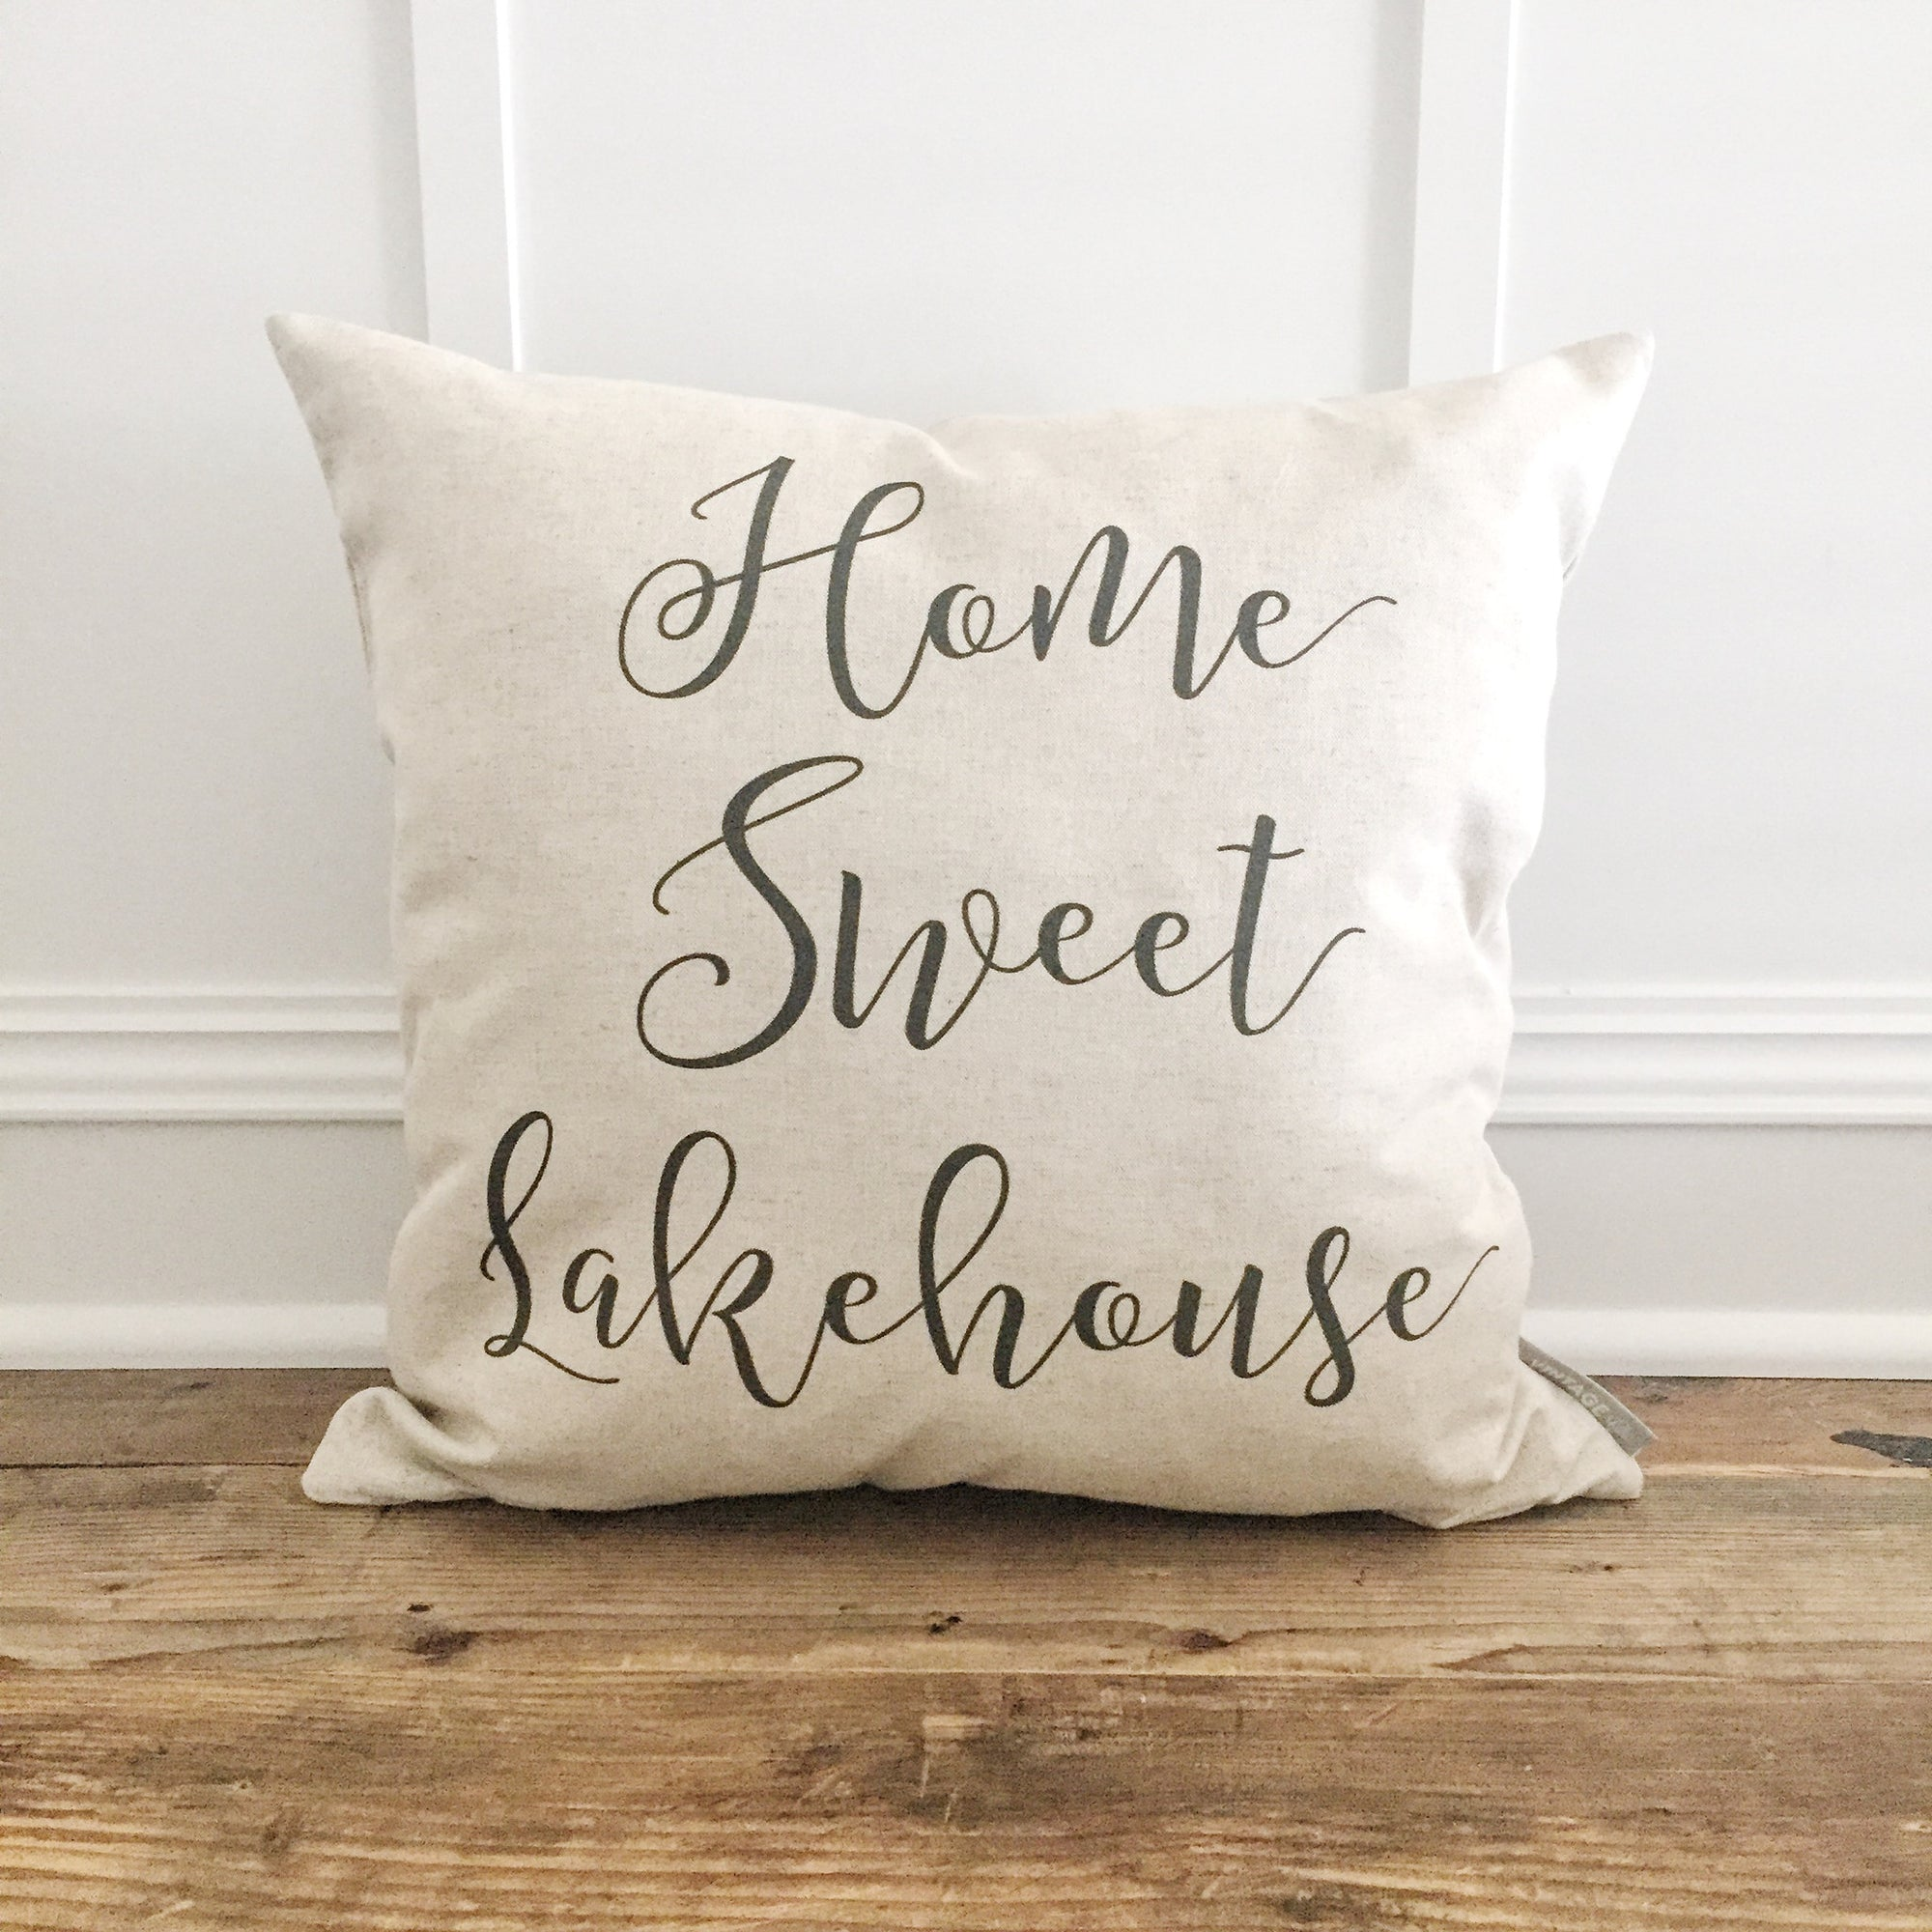 Home Sweet Lakehouse Pillow Cover - Linen and Ivory